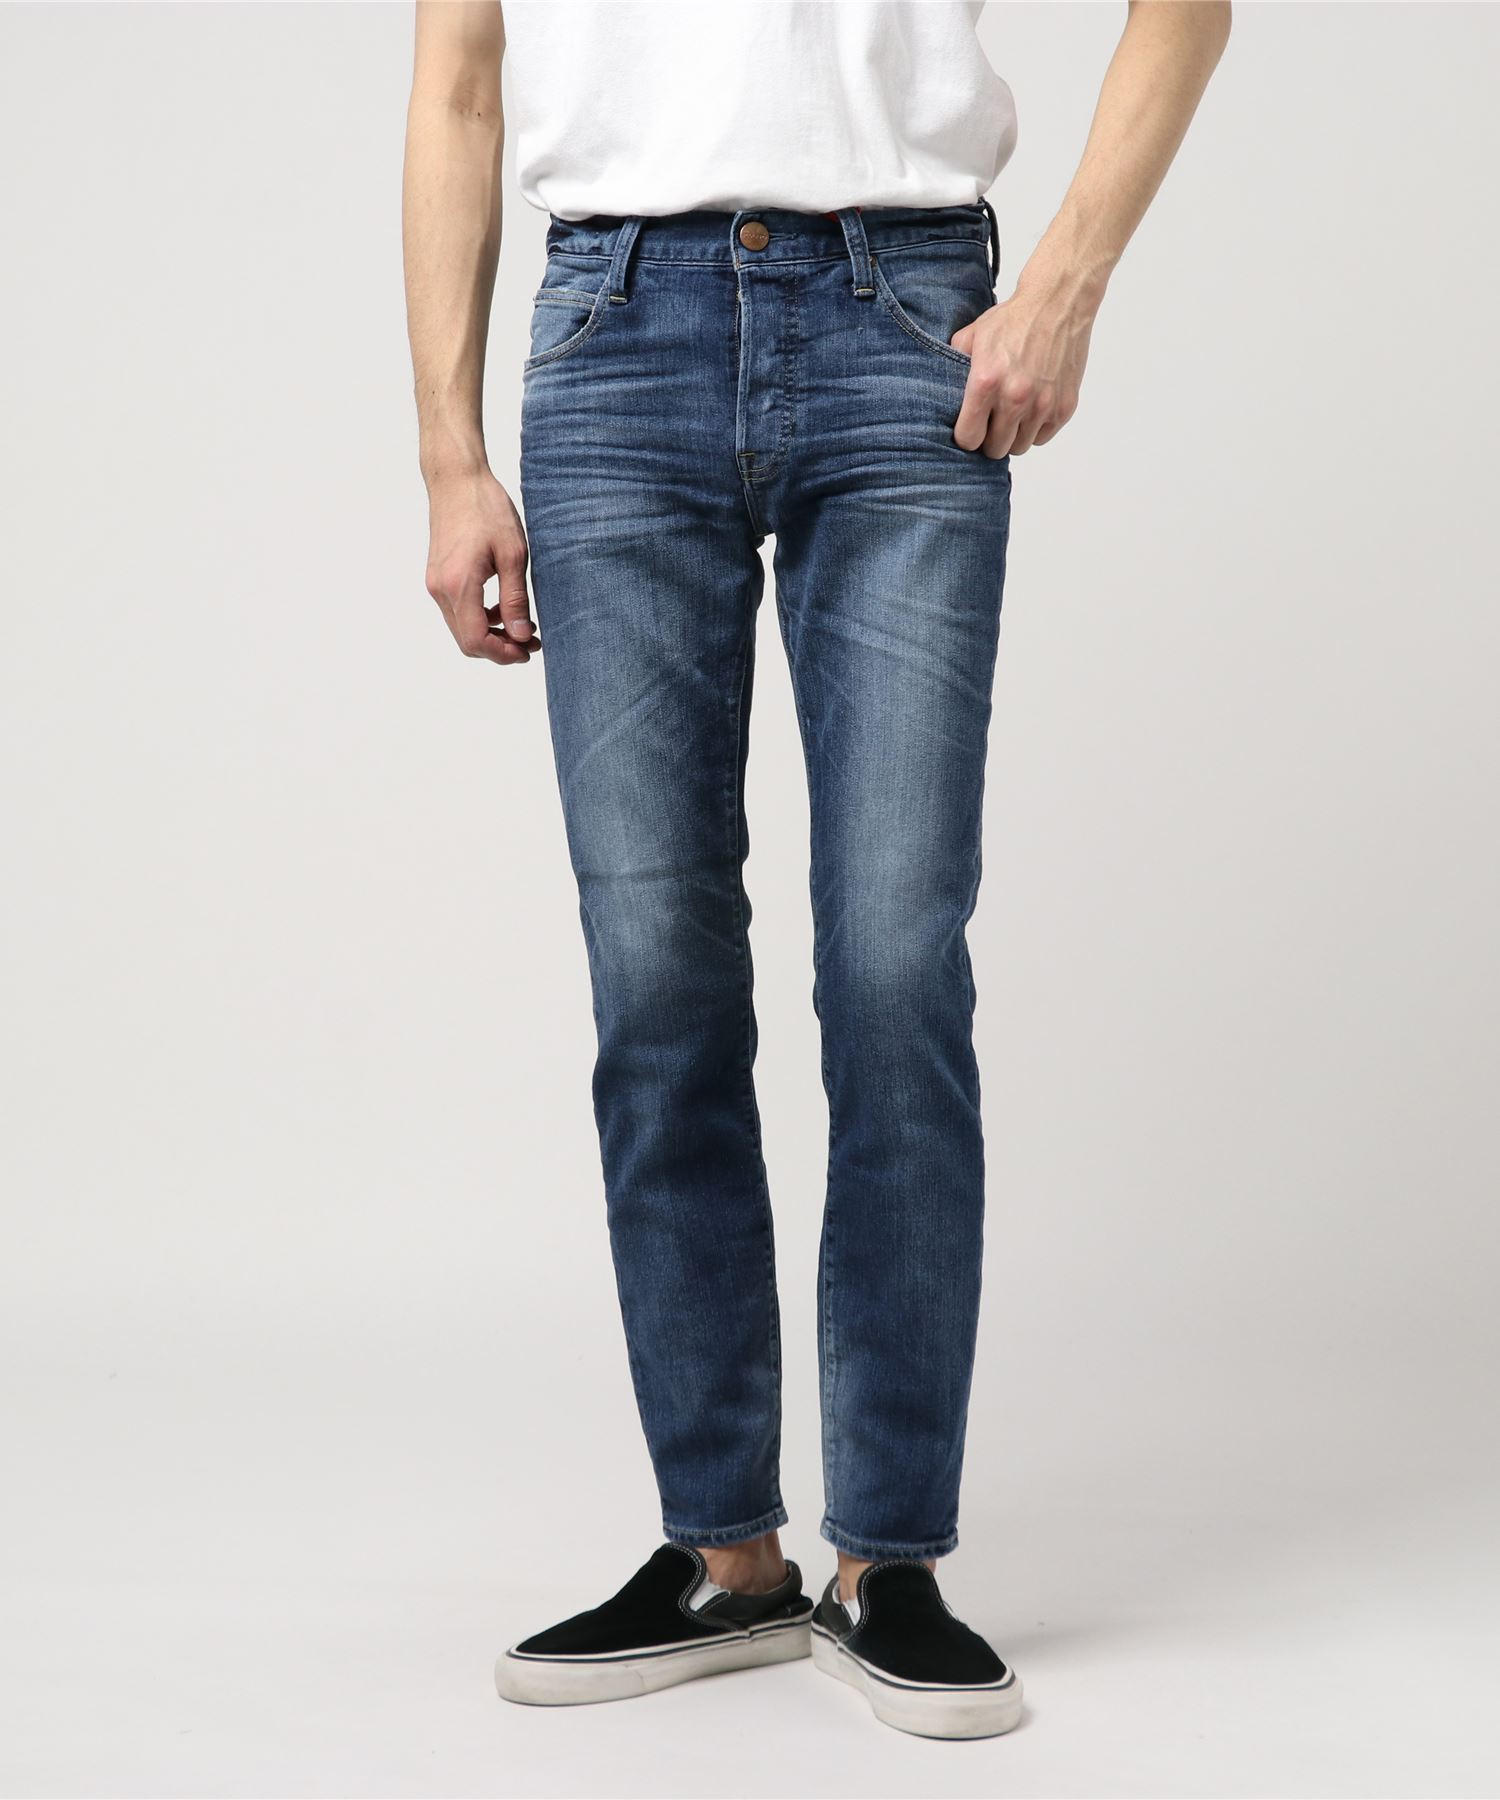 RED CARD レッドカード / Ryder Pants